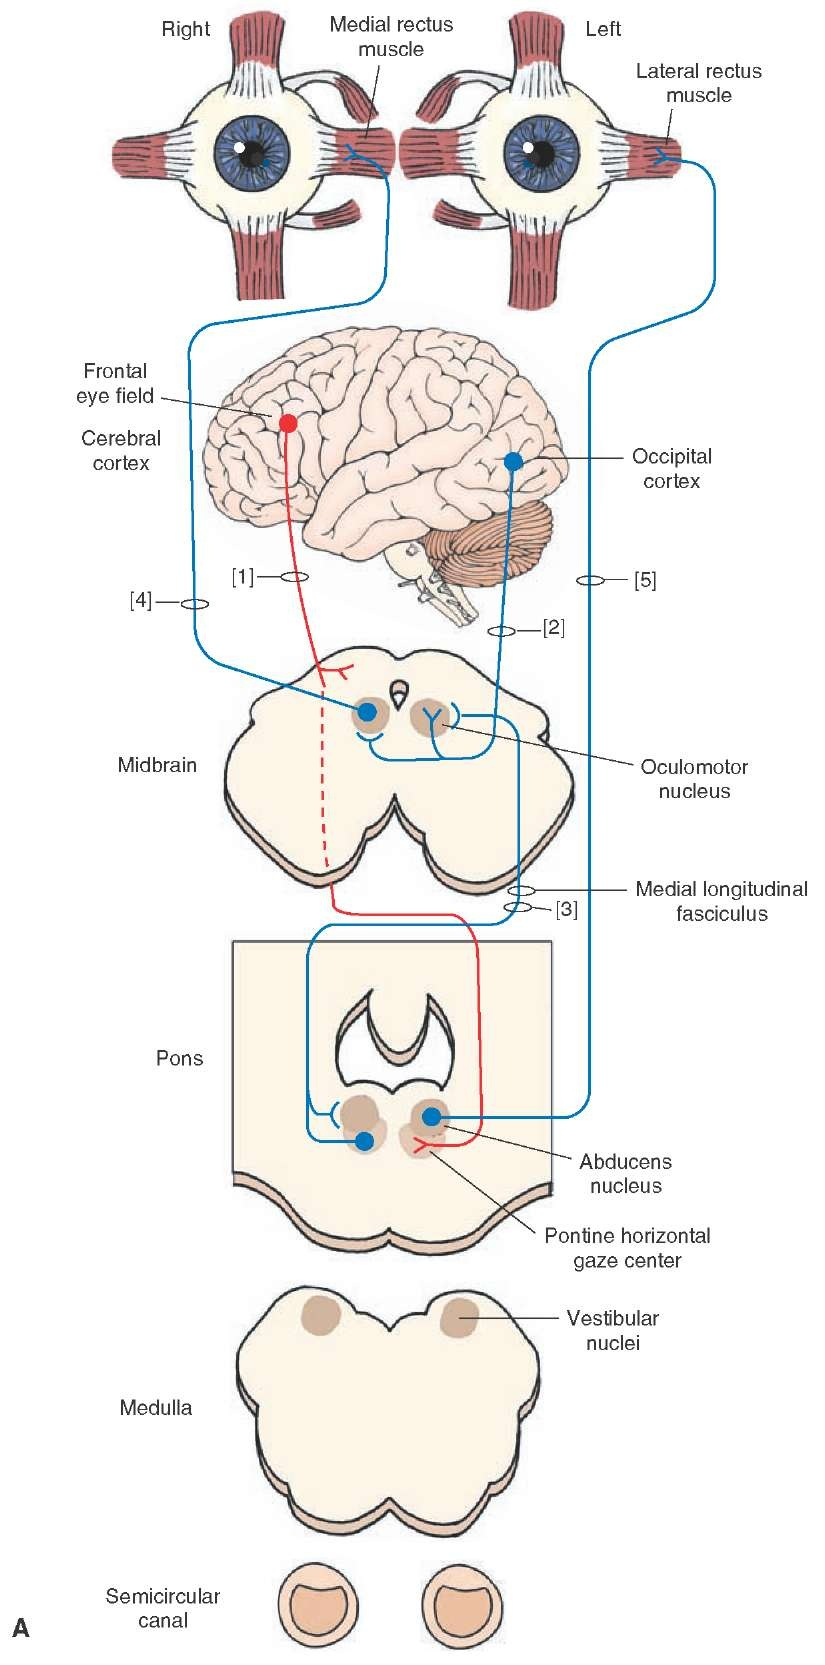 The Cranial Nerves Organization Of The Central Nervous System Part 4